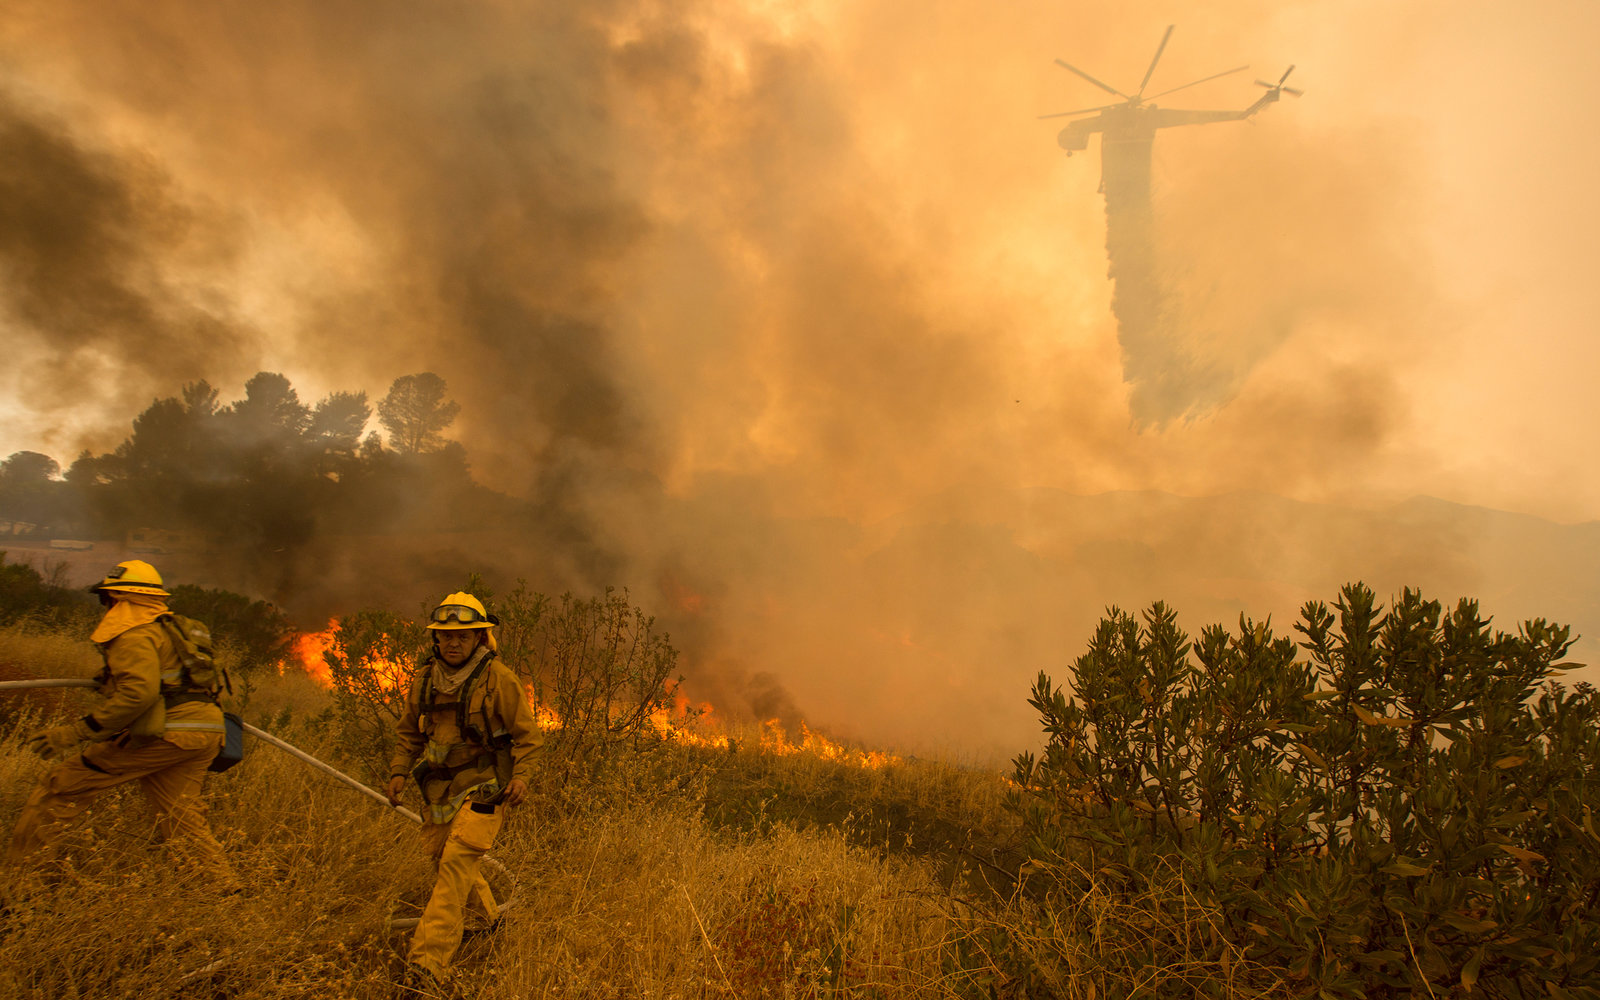 Los Angeles Sand Fire in Photos